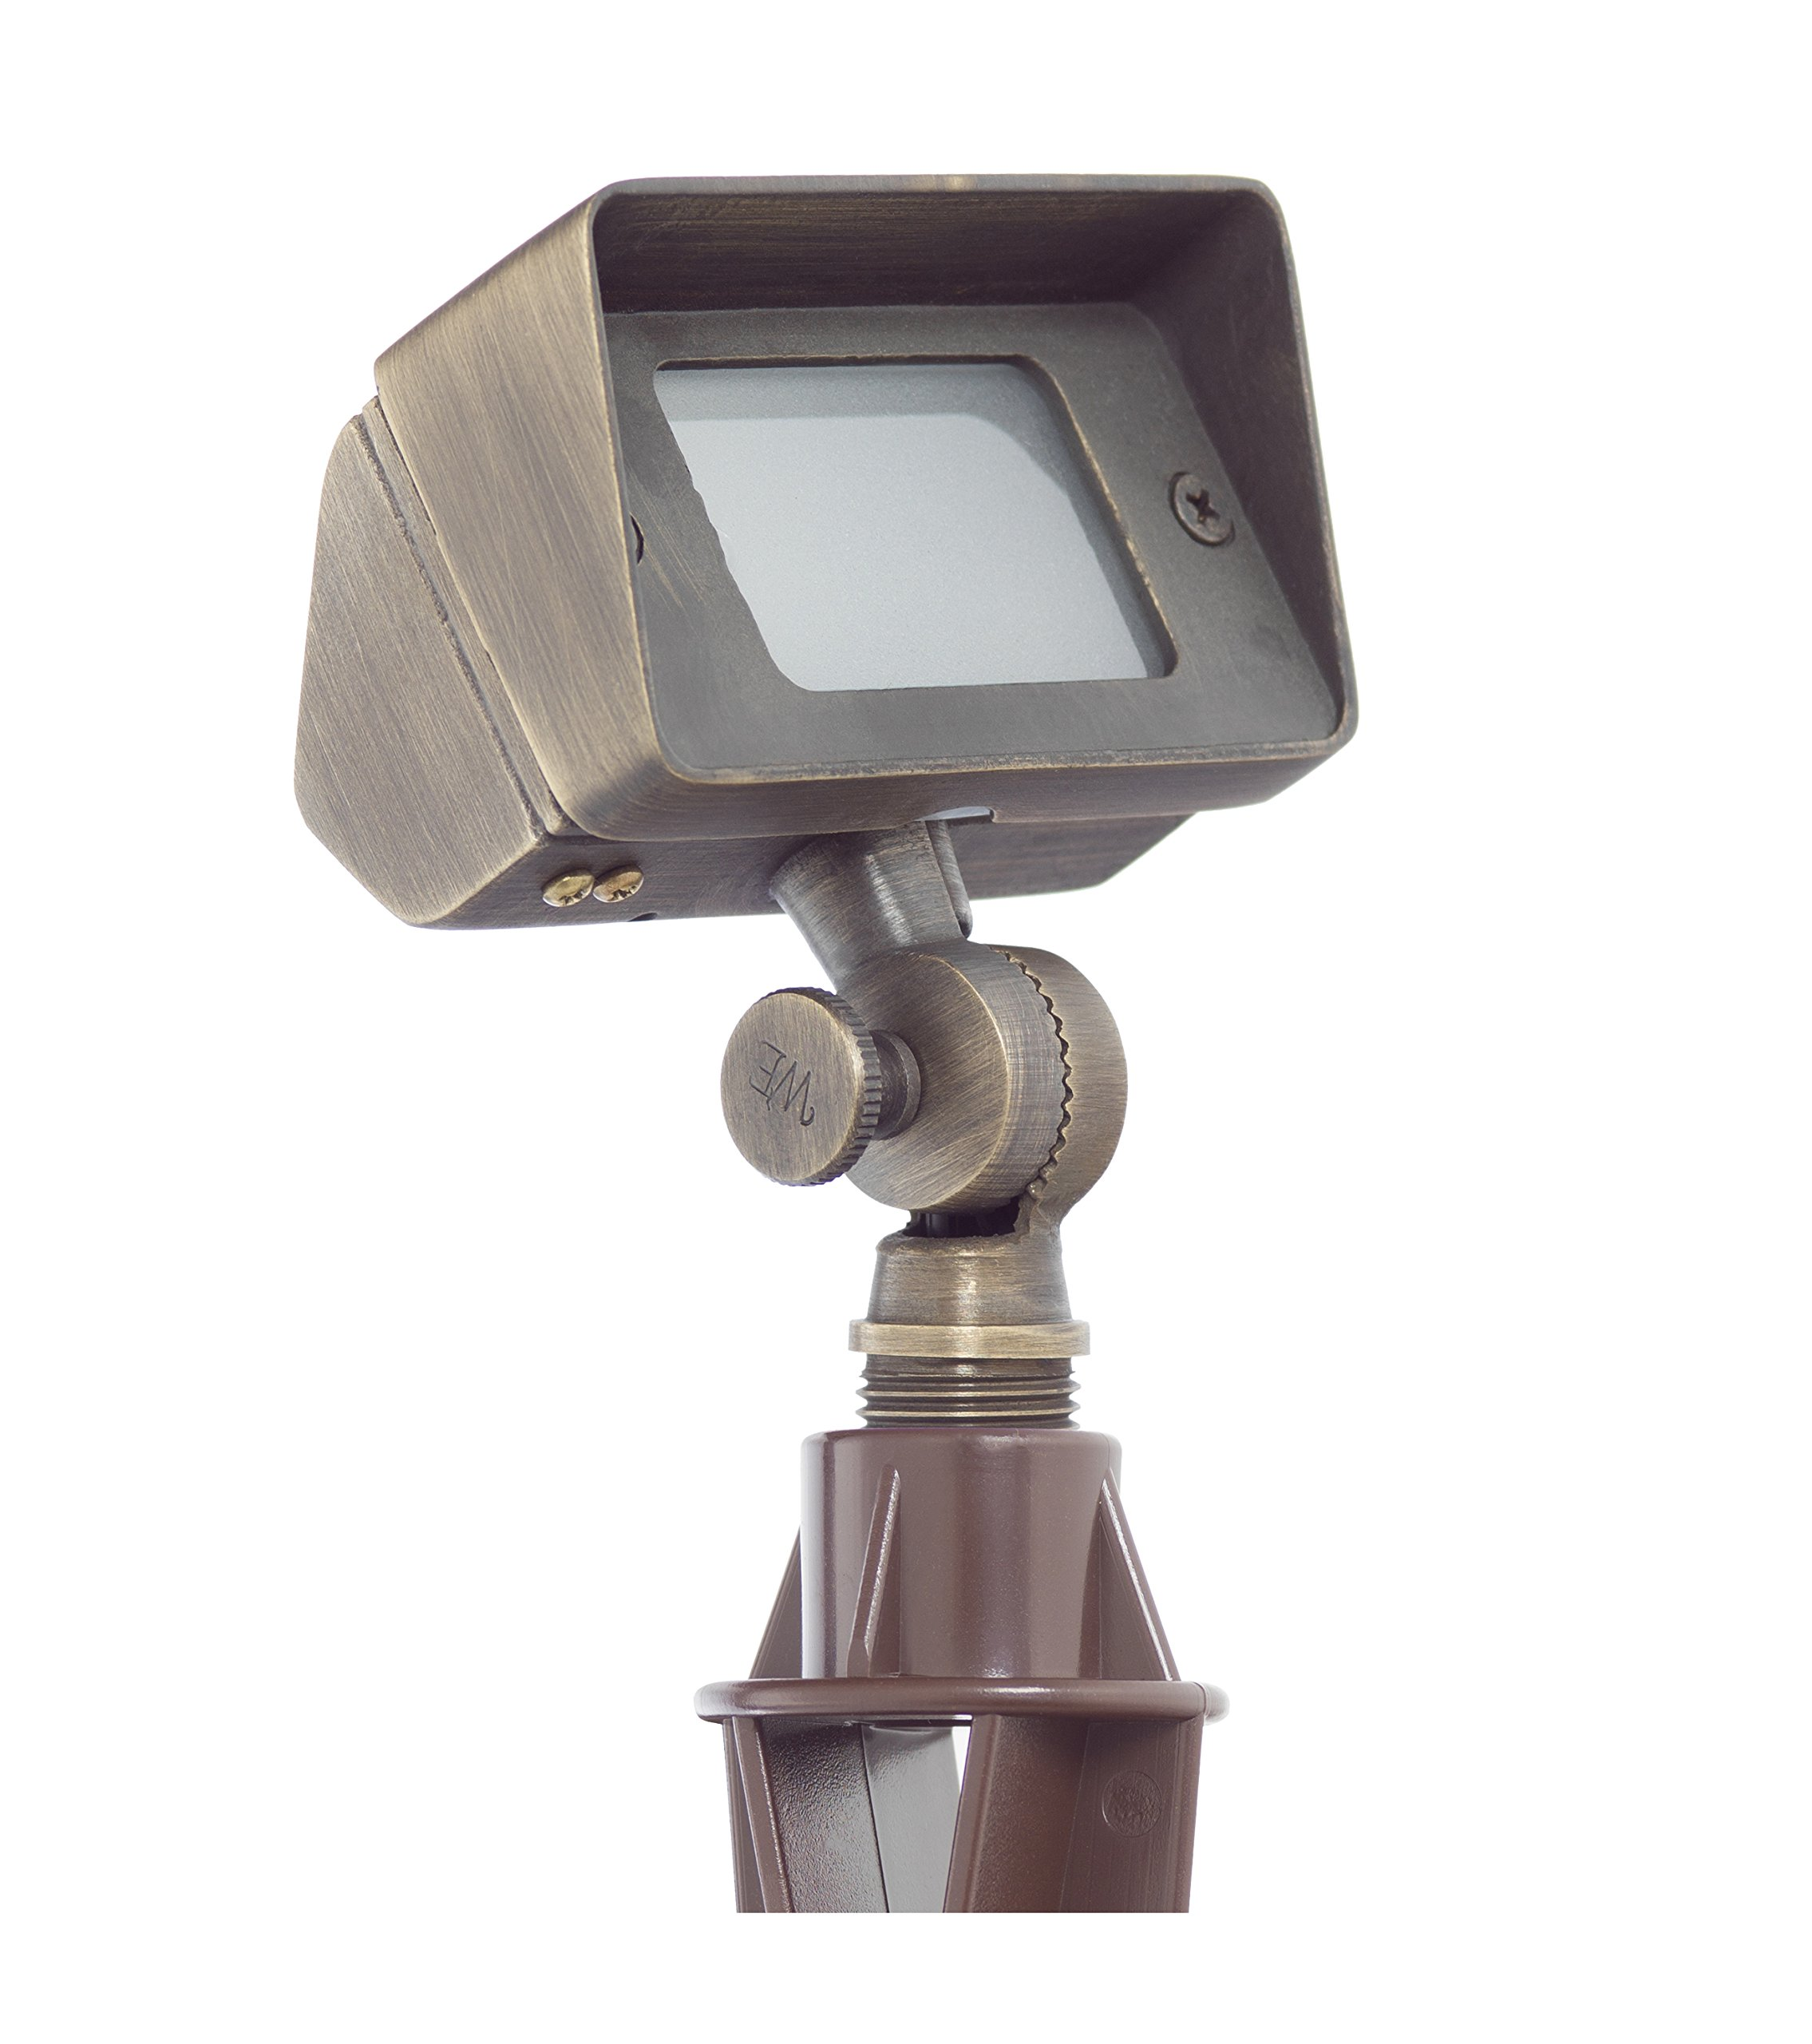 Westgate LED Directional Landscape Light-12V Landscape Lighting-COB Technology Directional Light- All Accessories Included - 3 Year Warranty